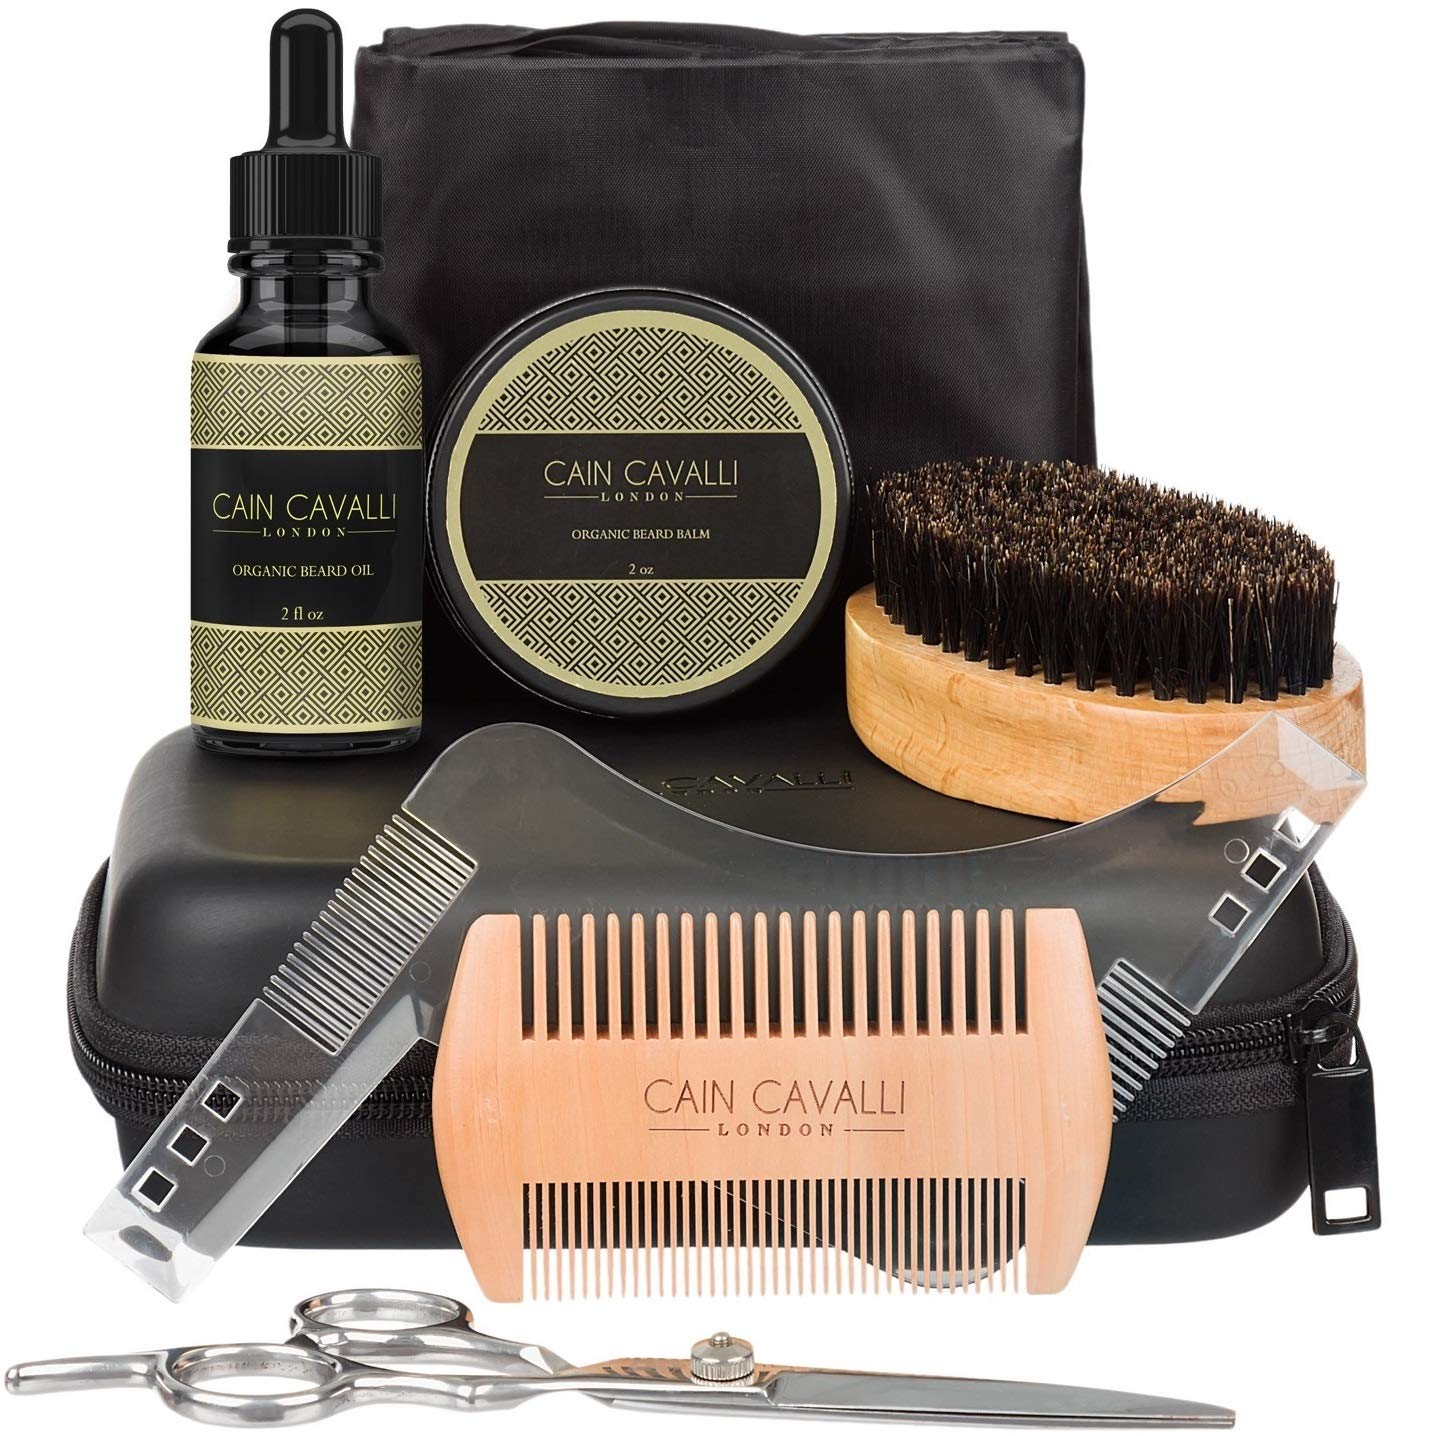 Cain Cavalli Premium Mens Beard Care Grooming Kit - Travel Case Shaper Template Apron Organic Oil Conditioner and Wax Balm Trimming Scissors Comb Brush - Ultimate Trimmer Accessories Set for Men